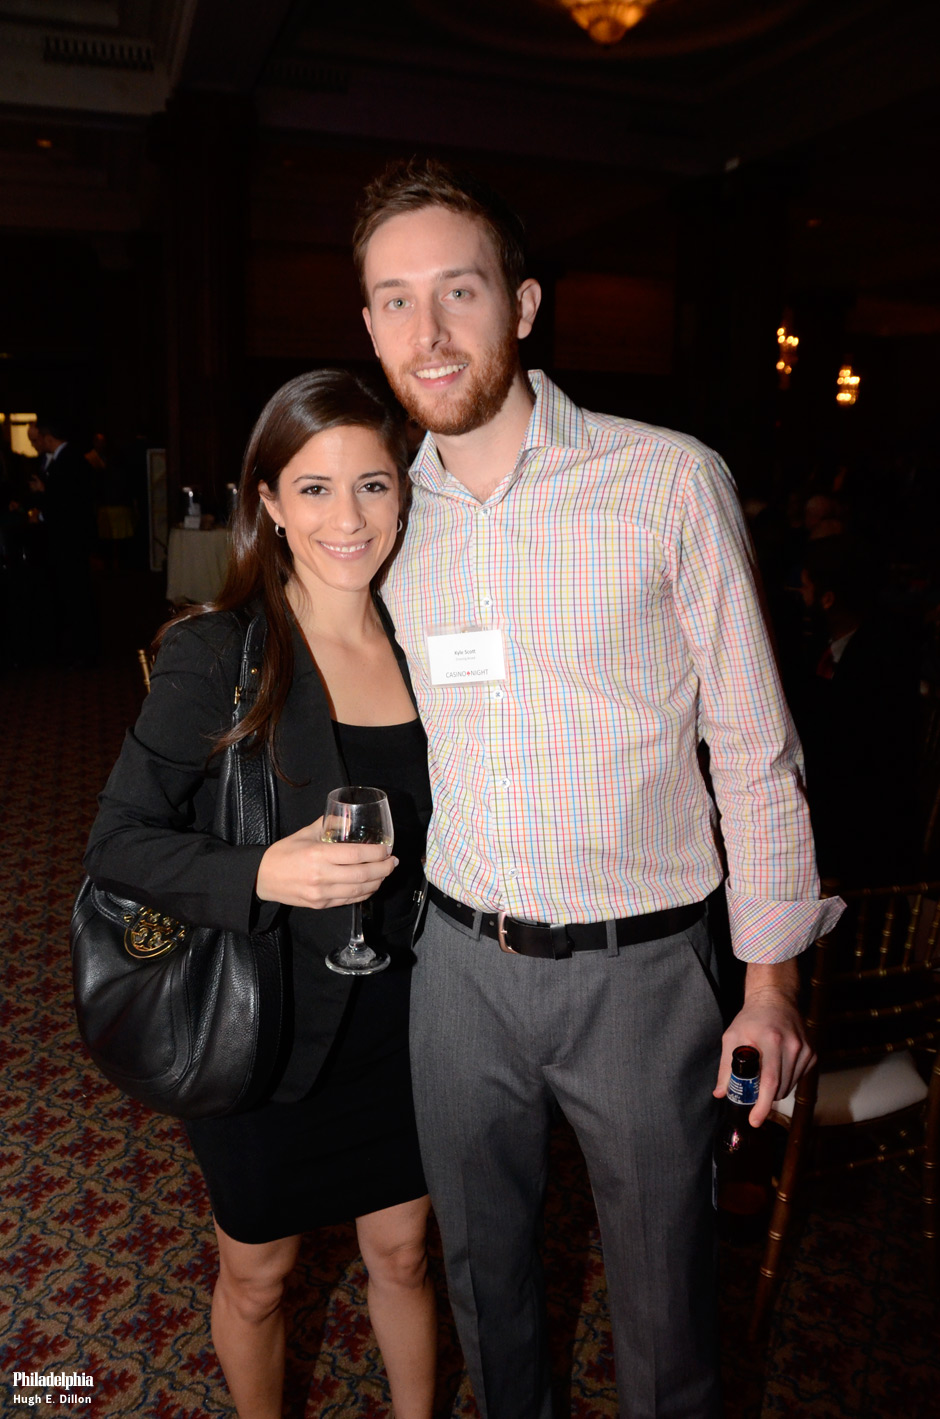 Below: Dana Bello and Kyle Scott of CrossingBroad.com. I think I saw Kyle hovering over his bid for the Scott Hartnell hockey stick all night–thus ensuring a win by him.